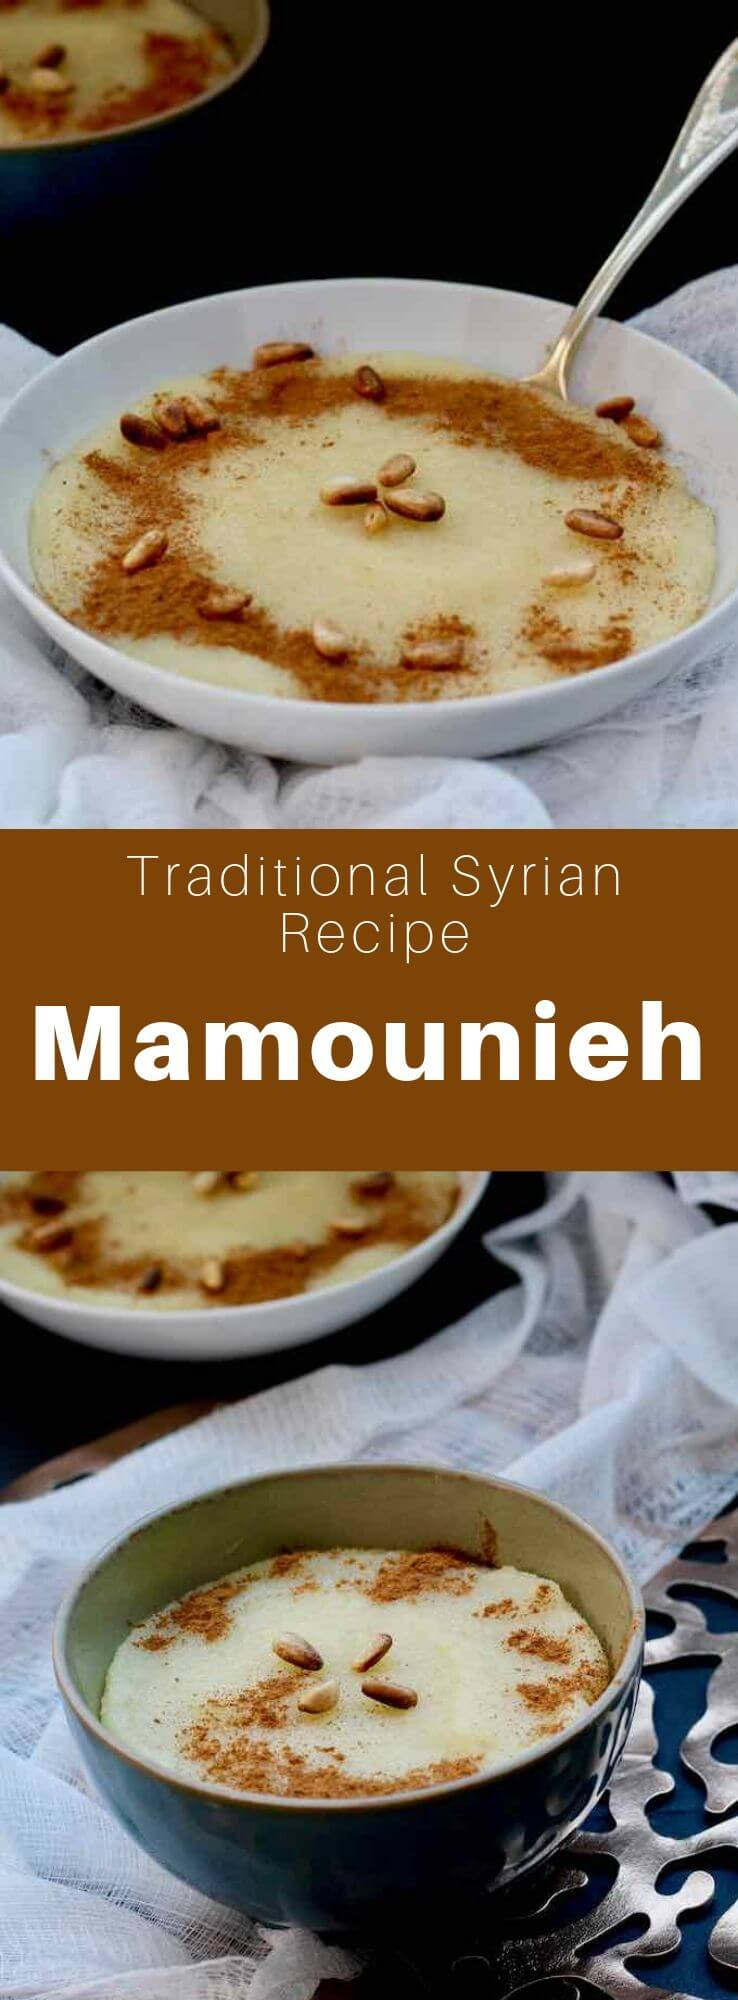 Mamounia (or mamounieh) is a delicious semolina pudding prepared with roasted semolina, butter and sugar syrup that is a breakfast favorite in Syria. #Syria #SyrianCuisine #SyrianRecipe #SyrianFood #MiddleEasternCuisine #MiddleEasternRecipe #MiddleEasternFood #ArabCuisine #ArabRecipe #ArabFood #WorldCuisine #196flavors